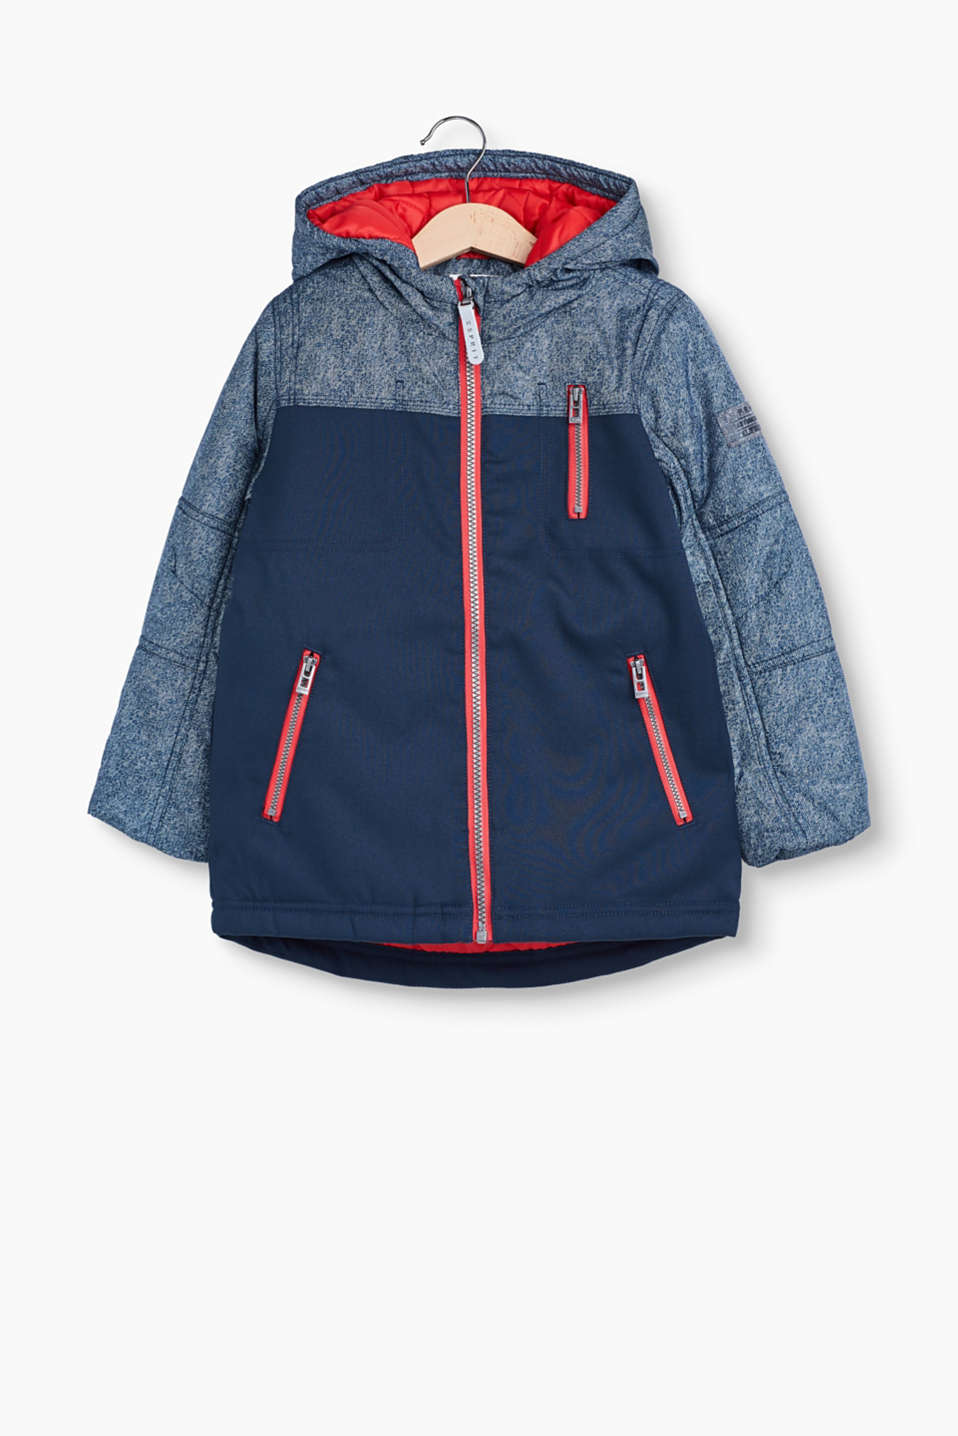 Cool, highly functional piece: padded outdoor jacket with reflective details